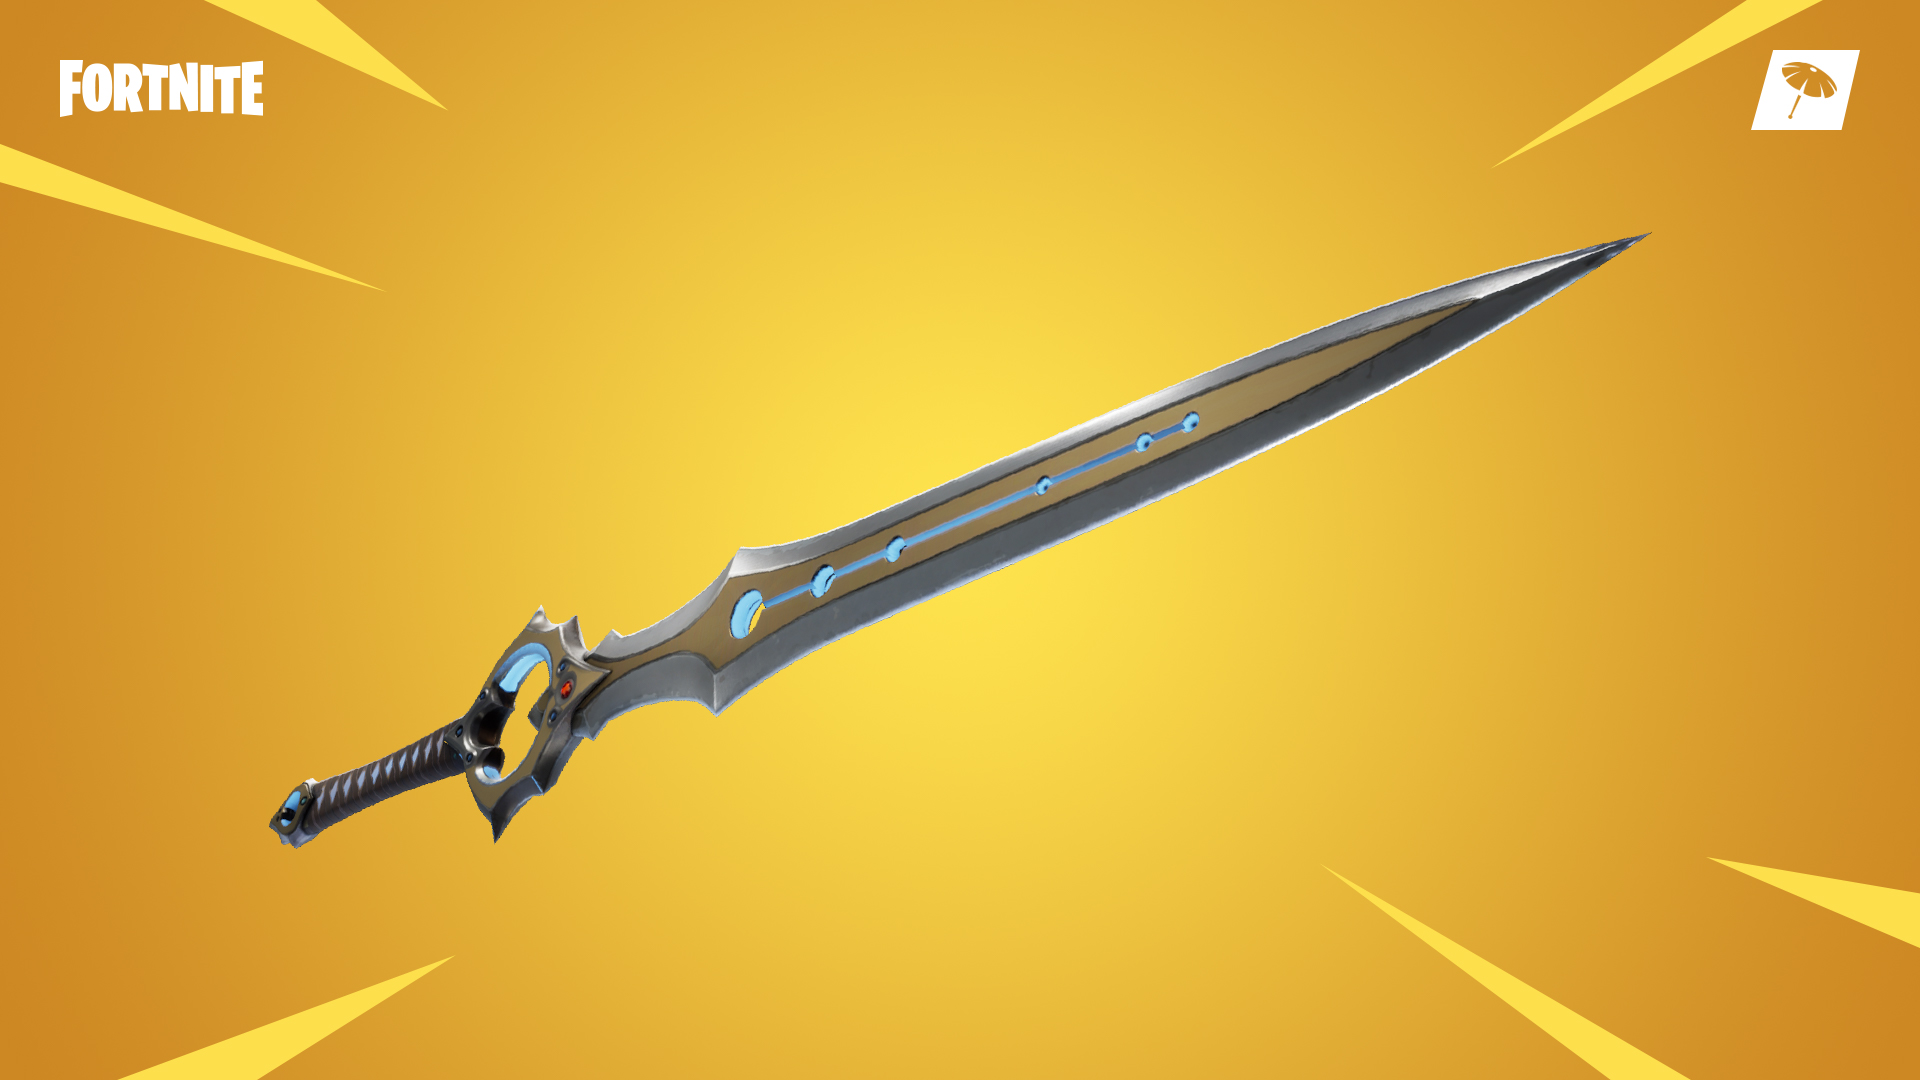 Epic Games vaults the Infinity Blade after fan outrage